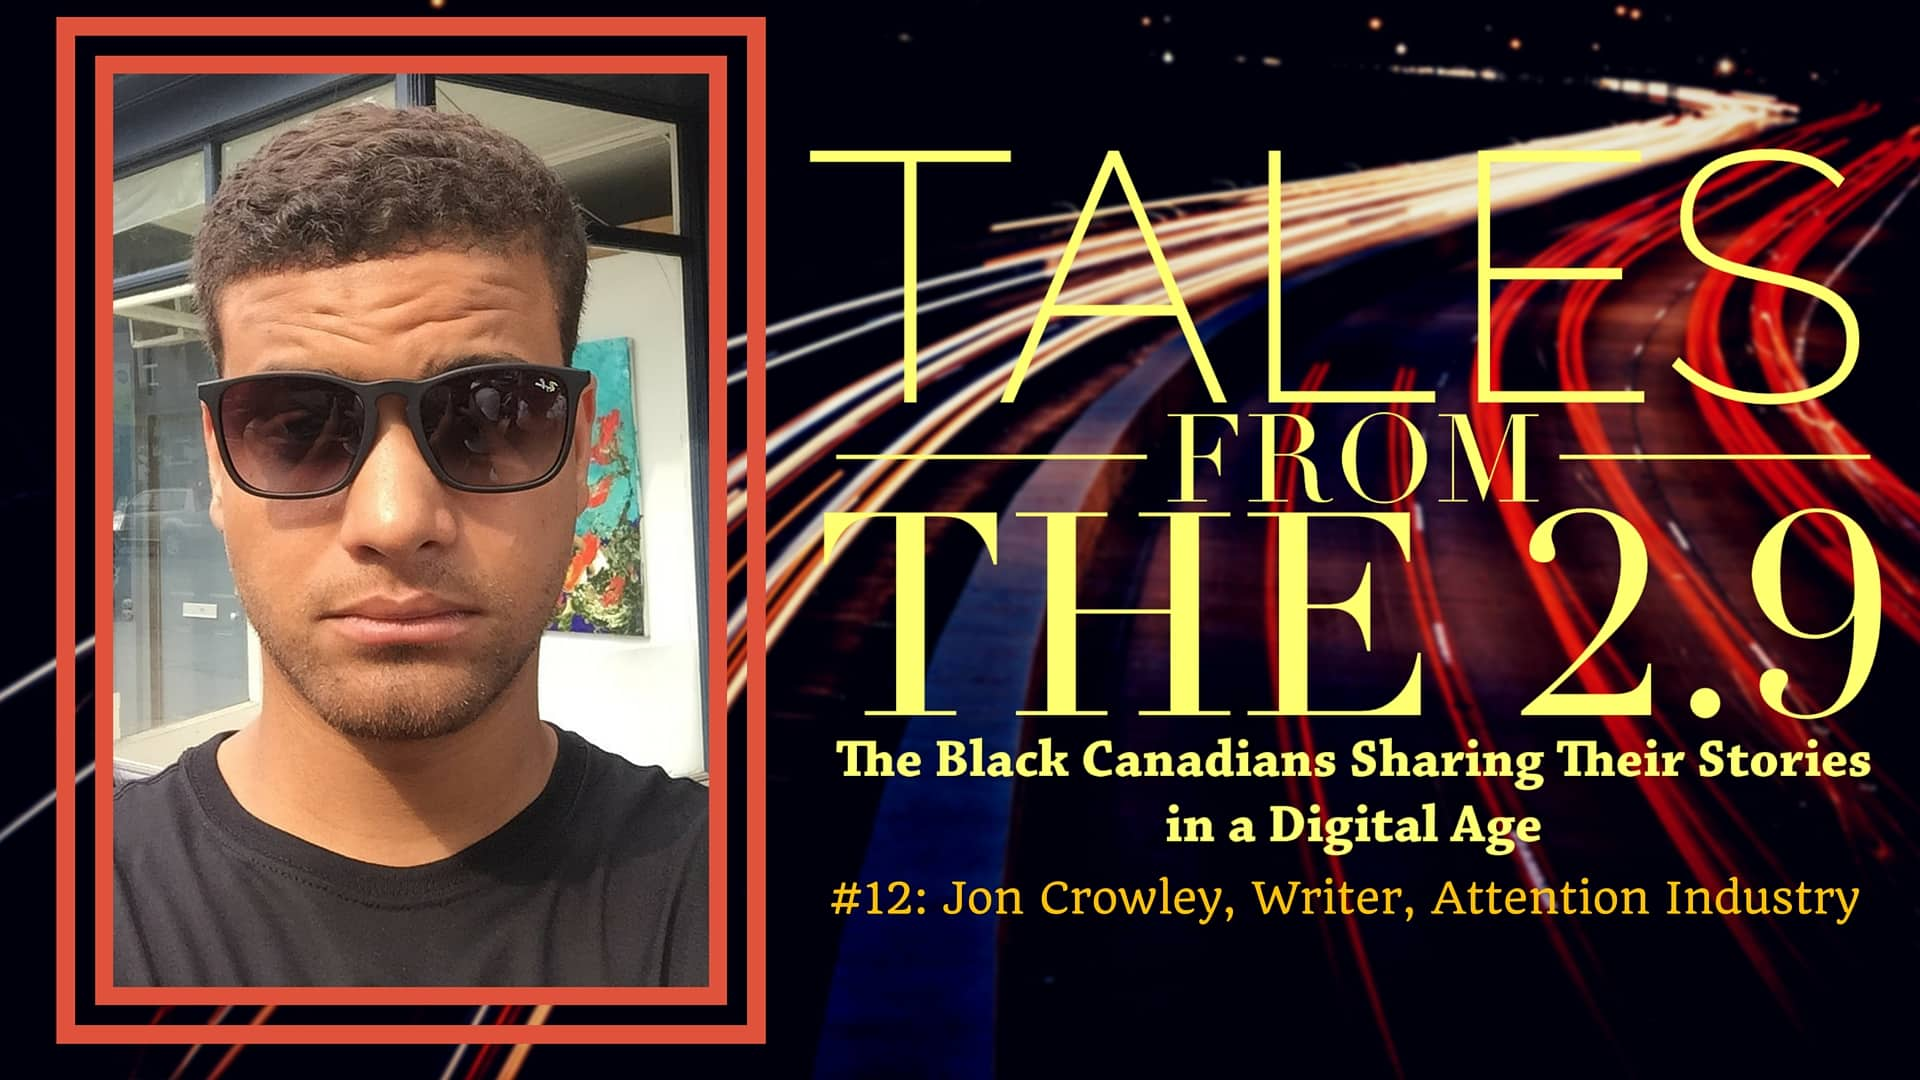 Tales from the 2.9 — #12- Jon Crowley (Featured Image)